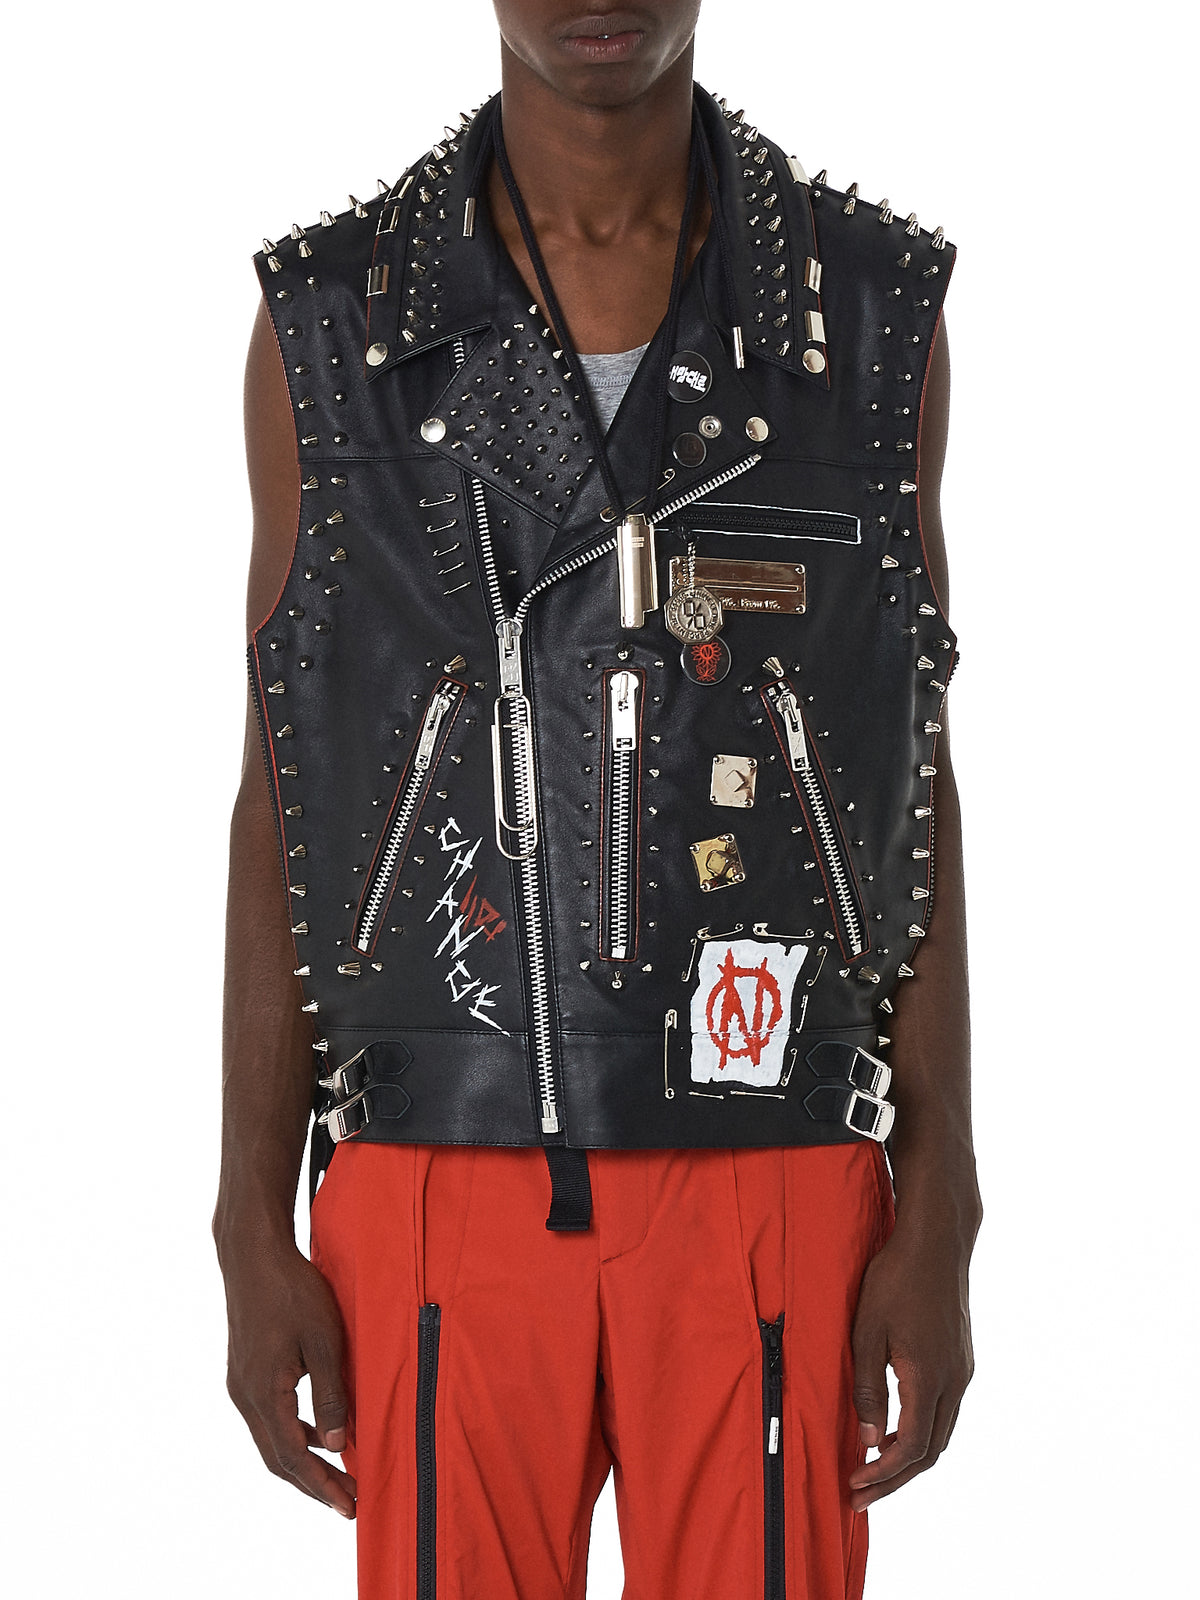 99%IS Studded Biker Vest - Hlorenzo Front